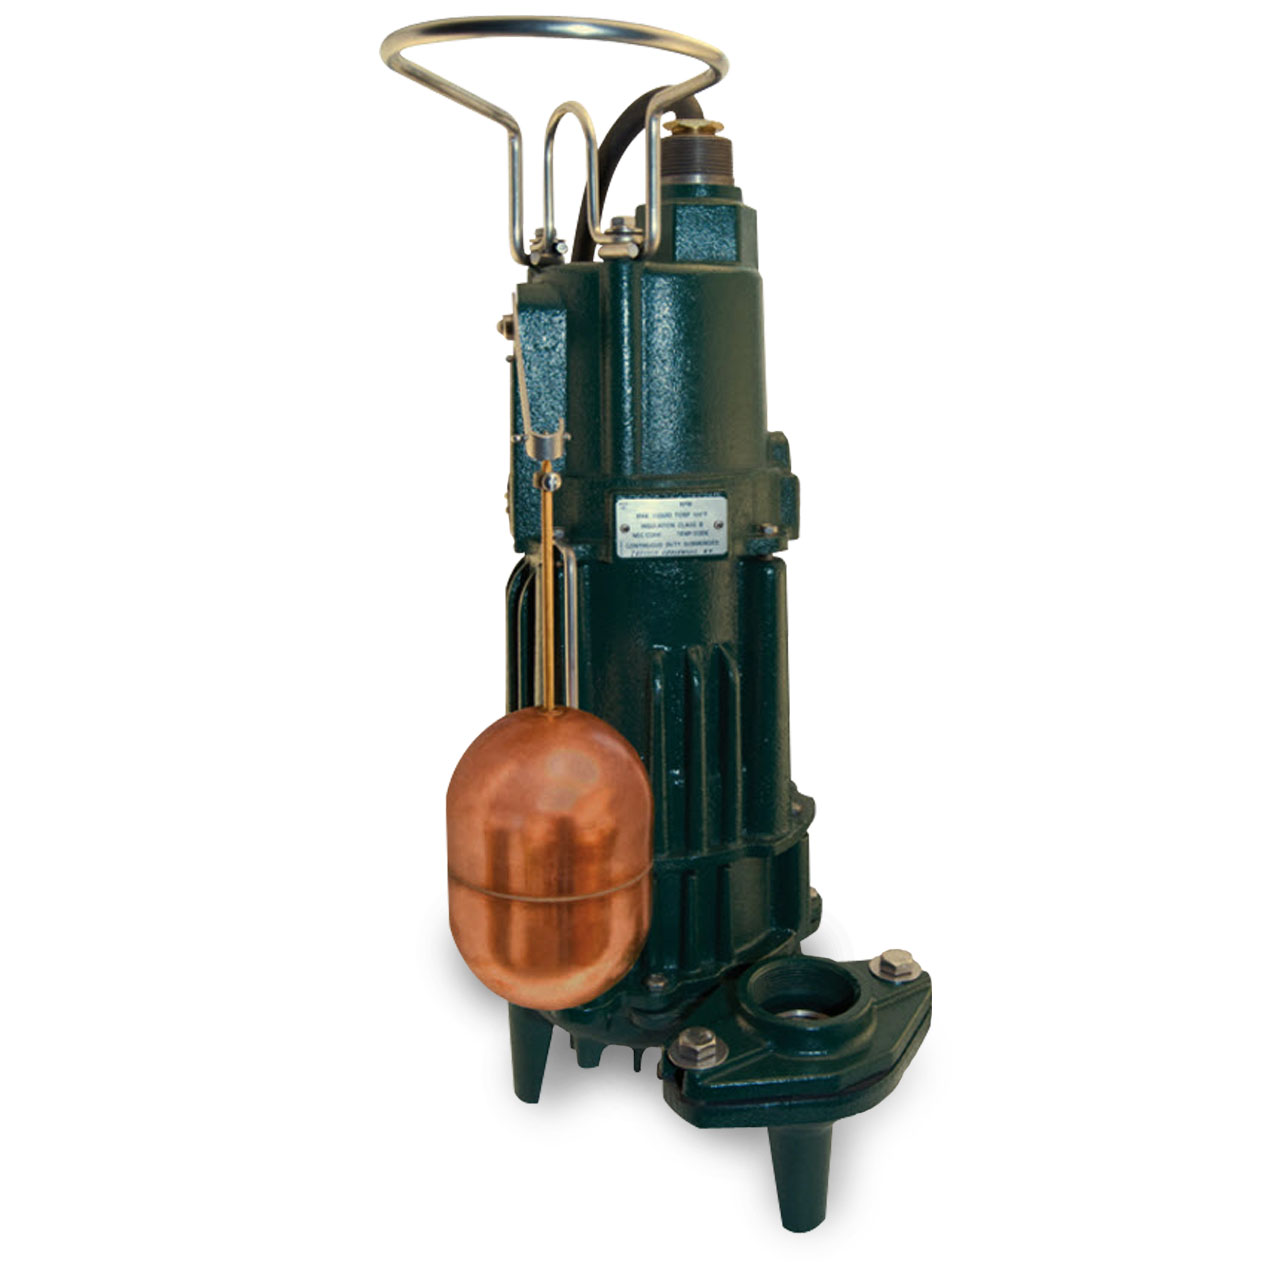 Zoeller Submersible Pump Wiring Diagram 27 Images X160 W 295 0070 Model Dx295 Explosion Proof 2 0 Hp